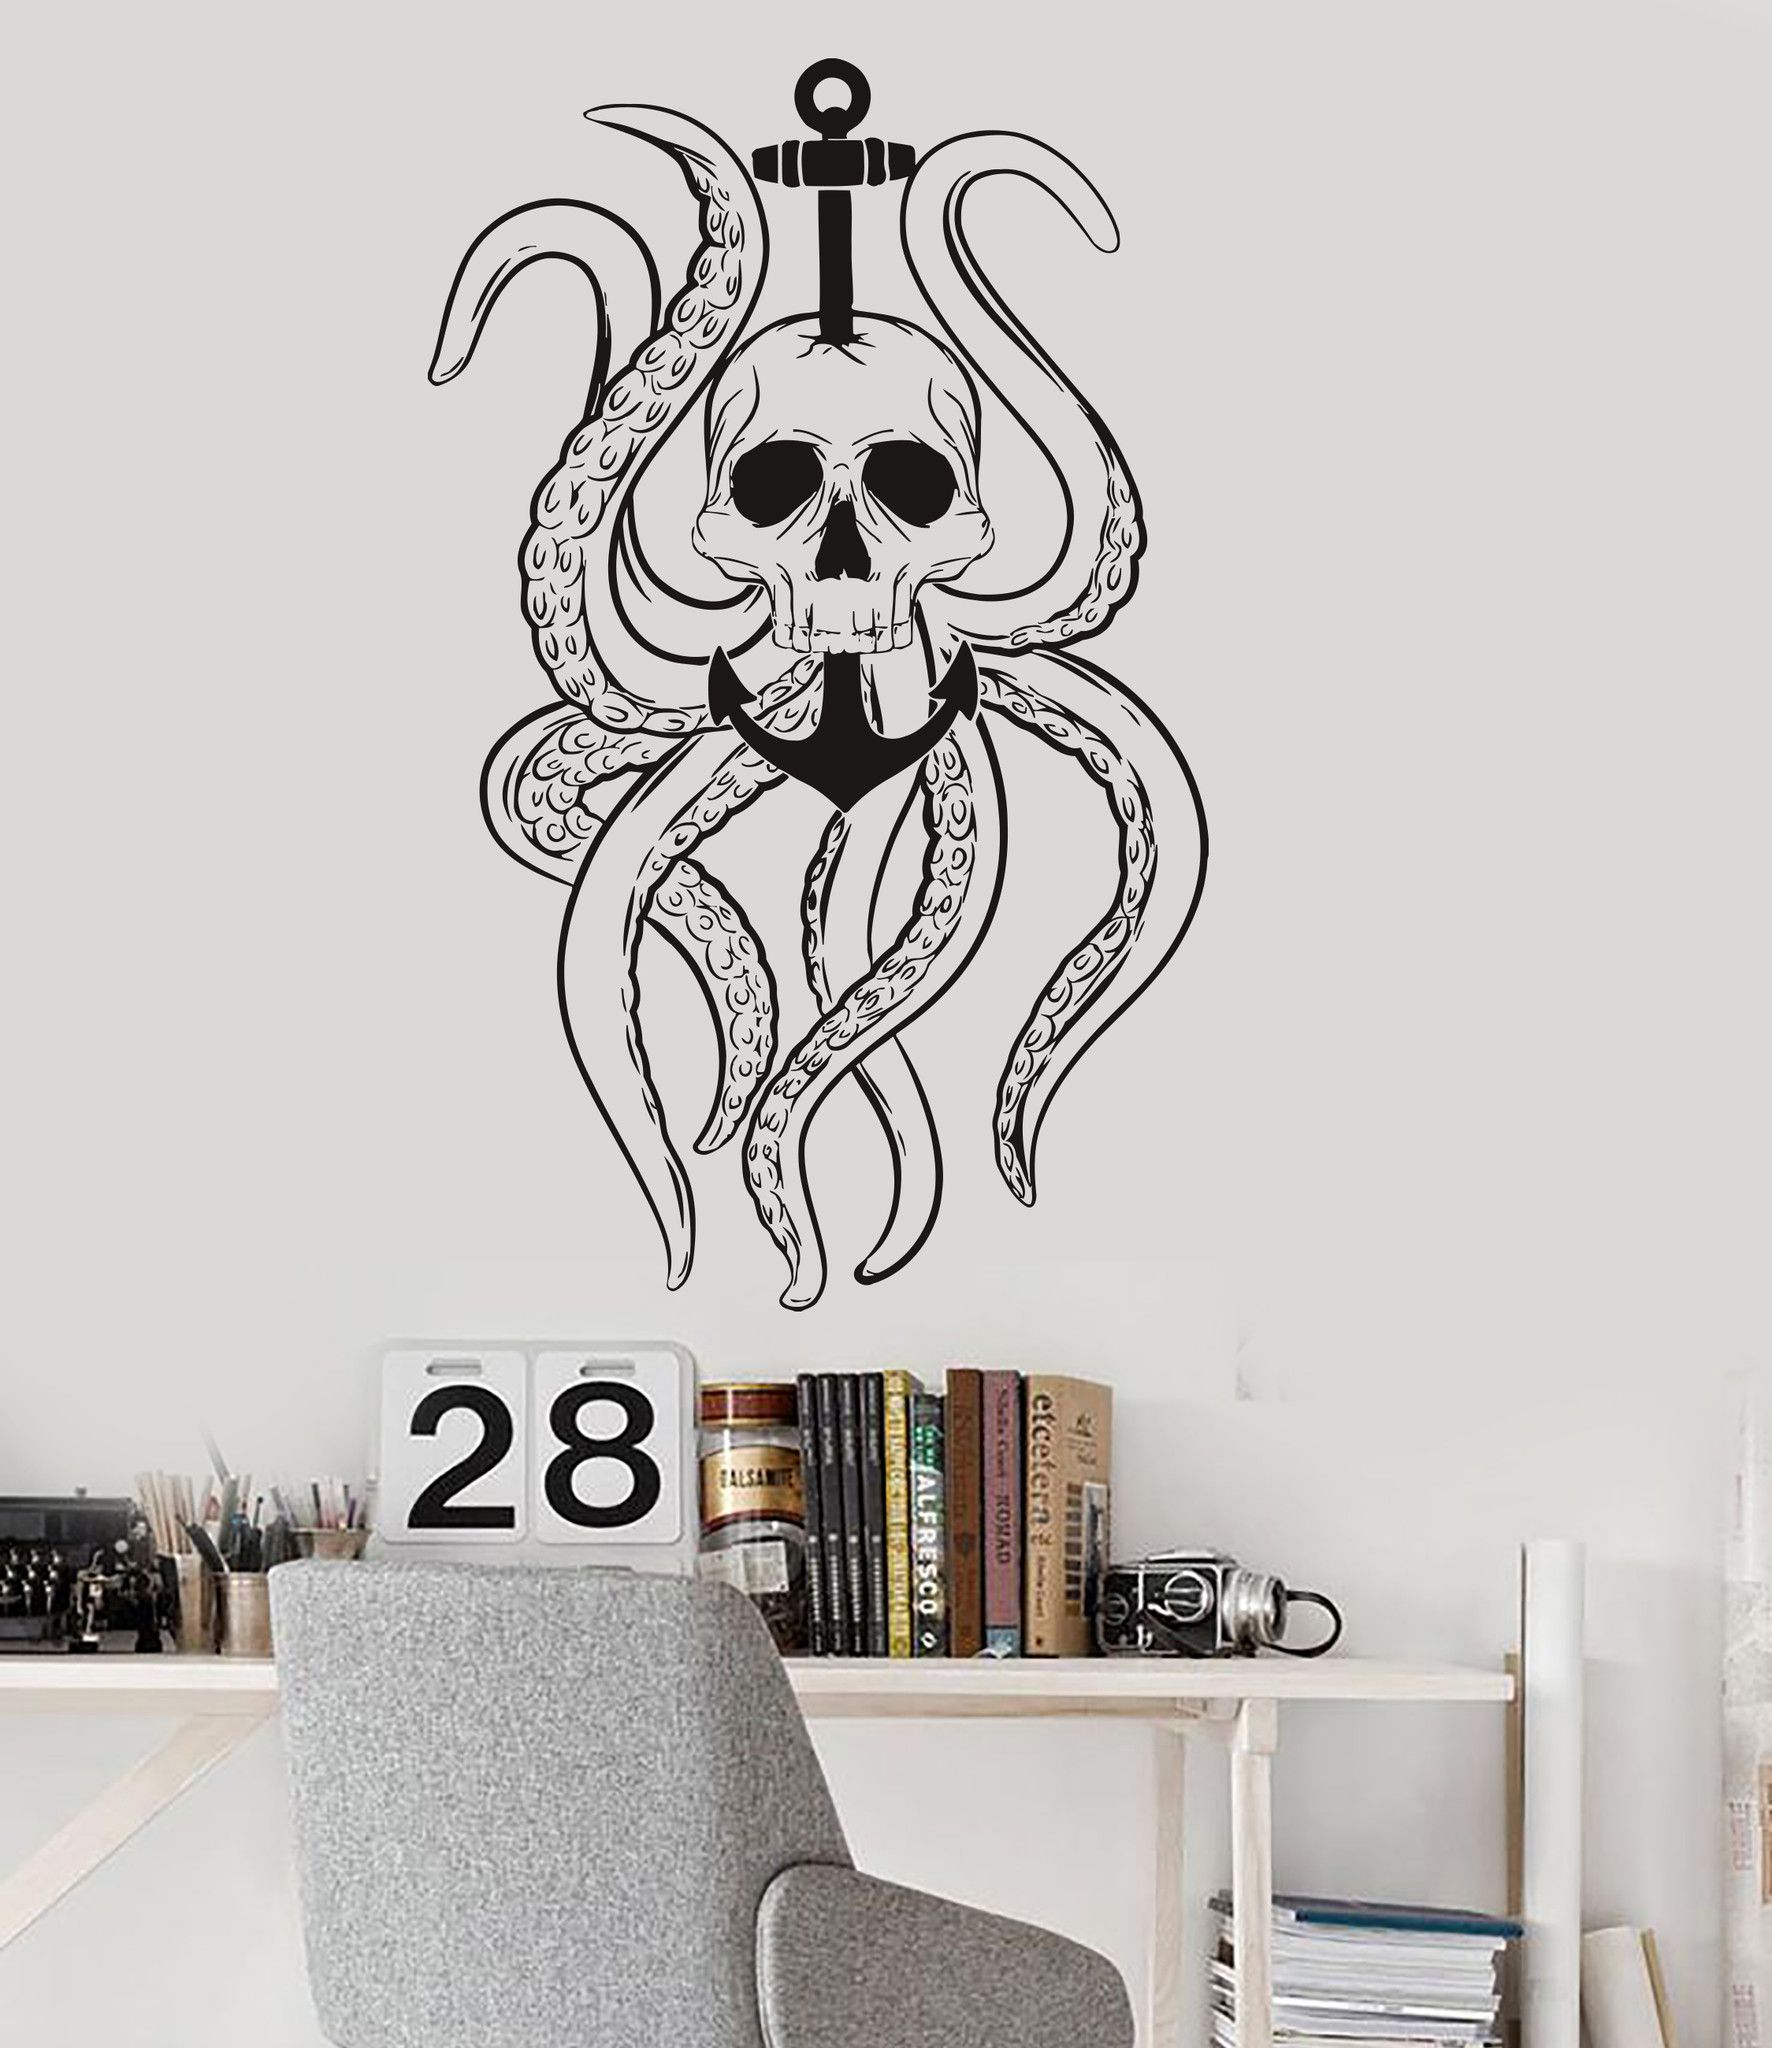 Vinyl wall decal octopus tentacles skull anchor nautical ocean vinyl wall decal octopus tentacles skull anchor nautical ocean stickers ig3584 amipublicfo Image collections